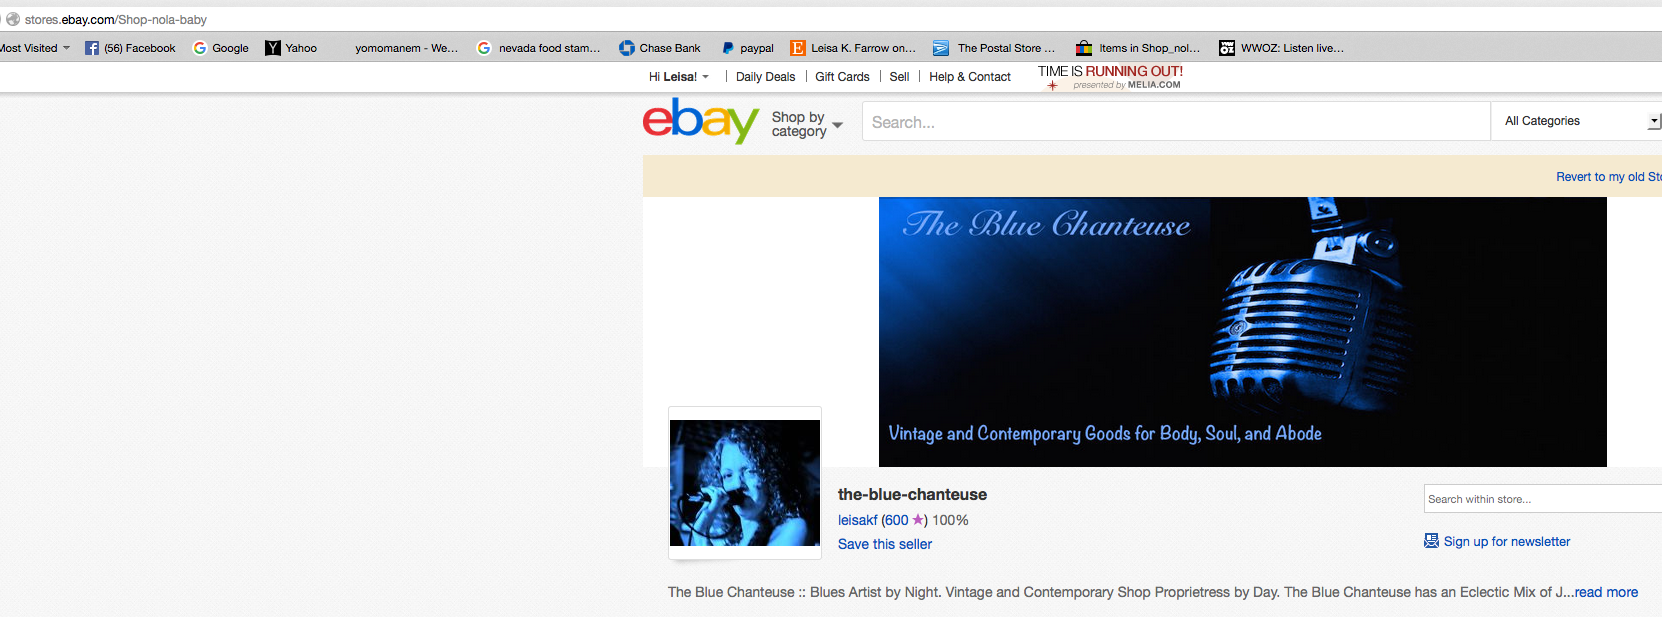 I M A Dunce Help Me Change My Store Url More P The Ebay Community